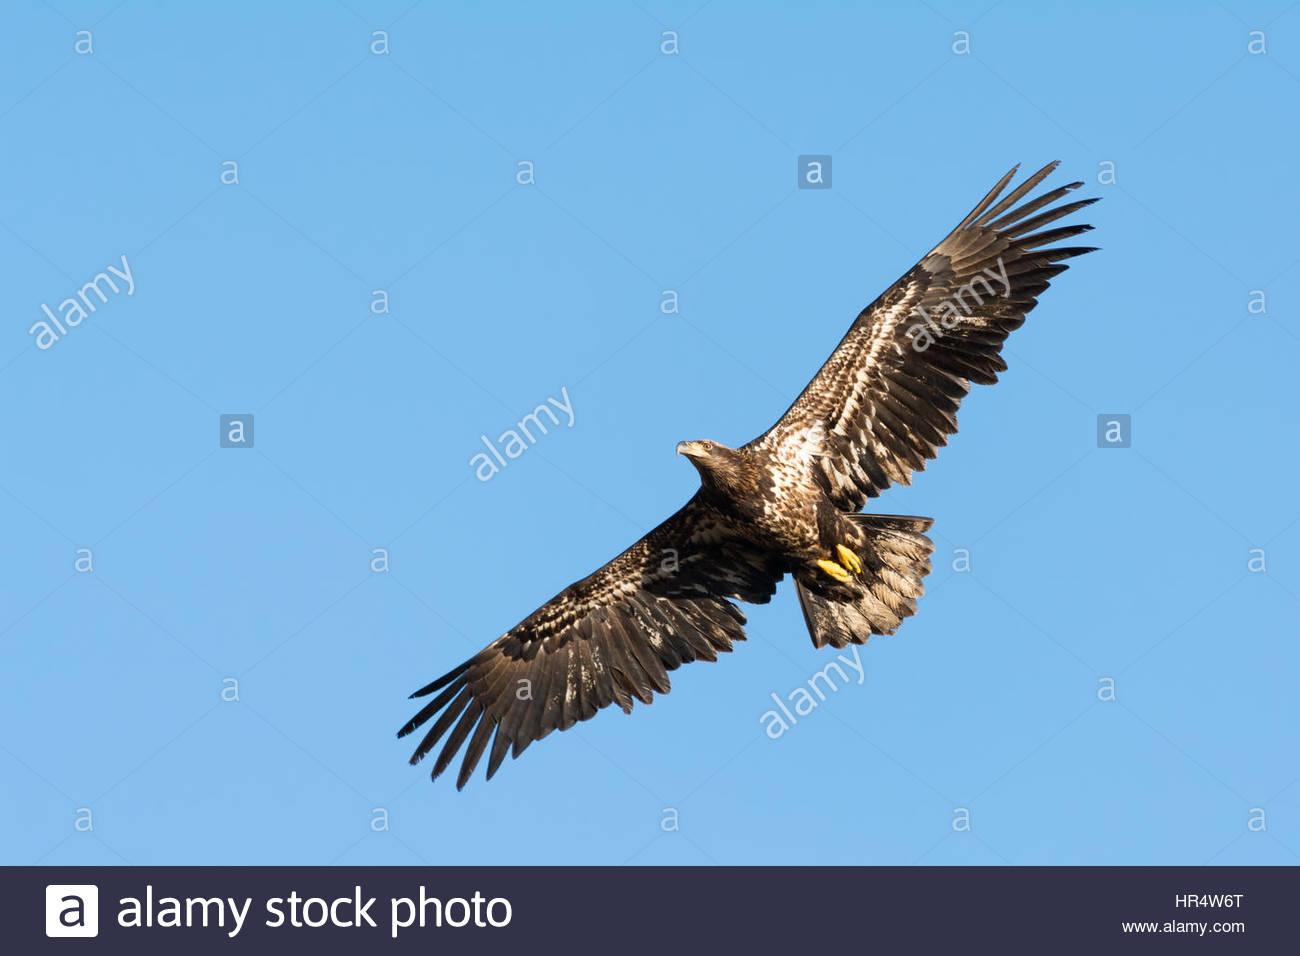 Juvenile Bald Eagle in flight with its wings extended. - Stock Image